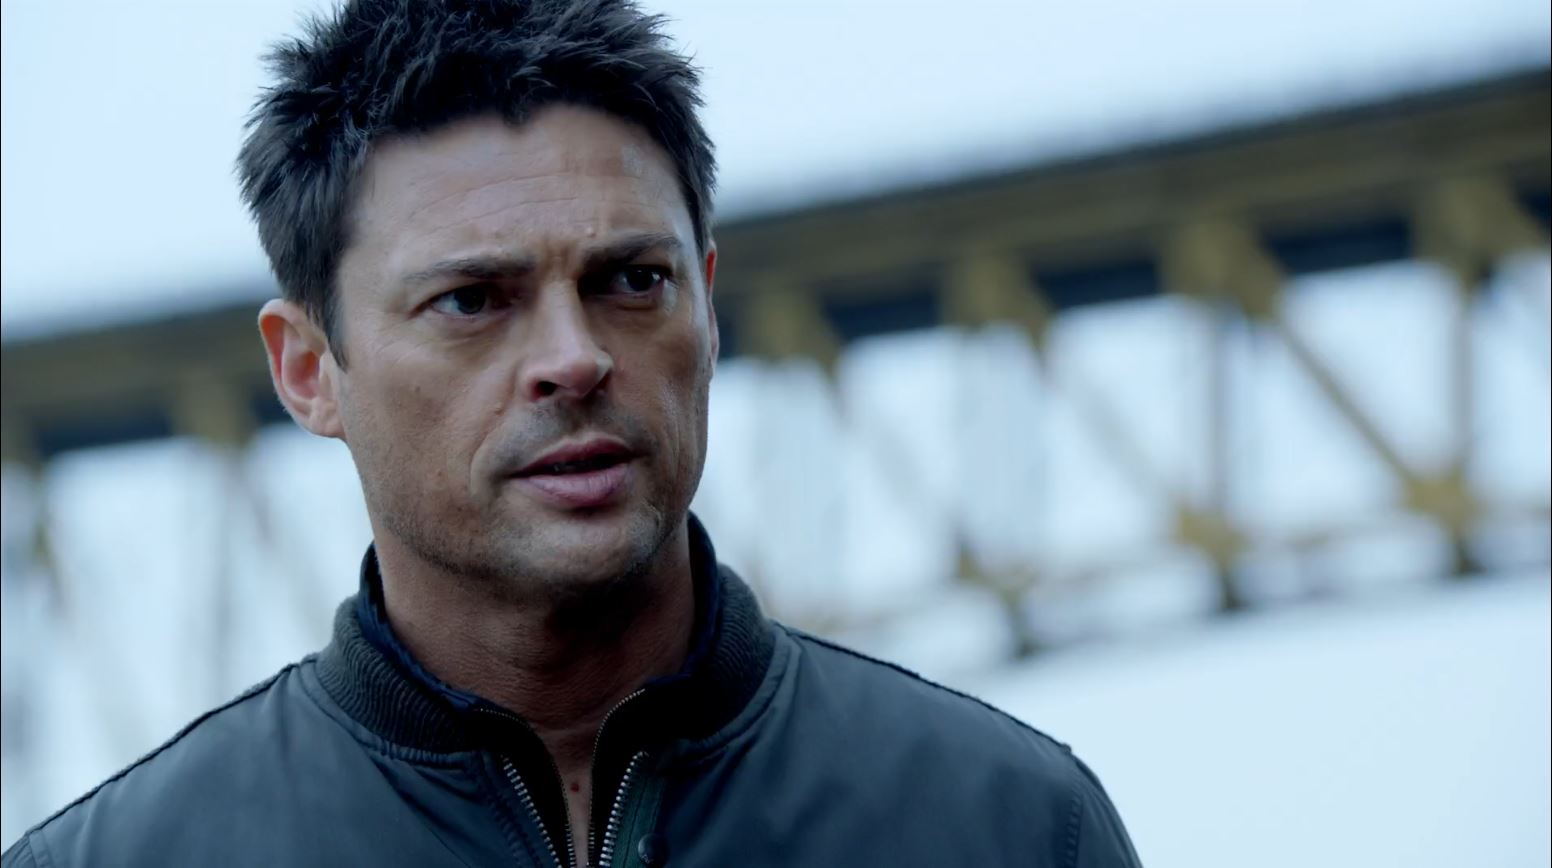 Almost Human - Karl Urban as John Kennex